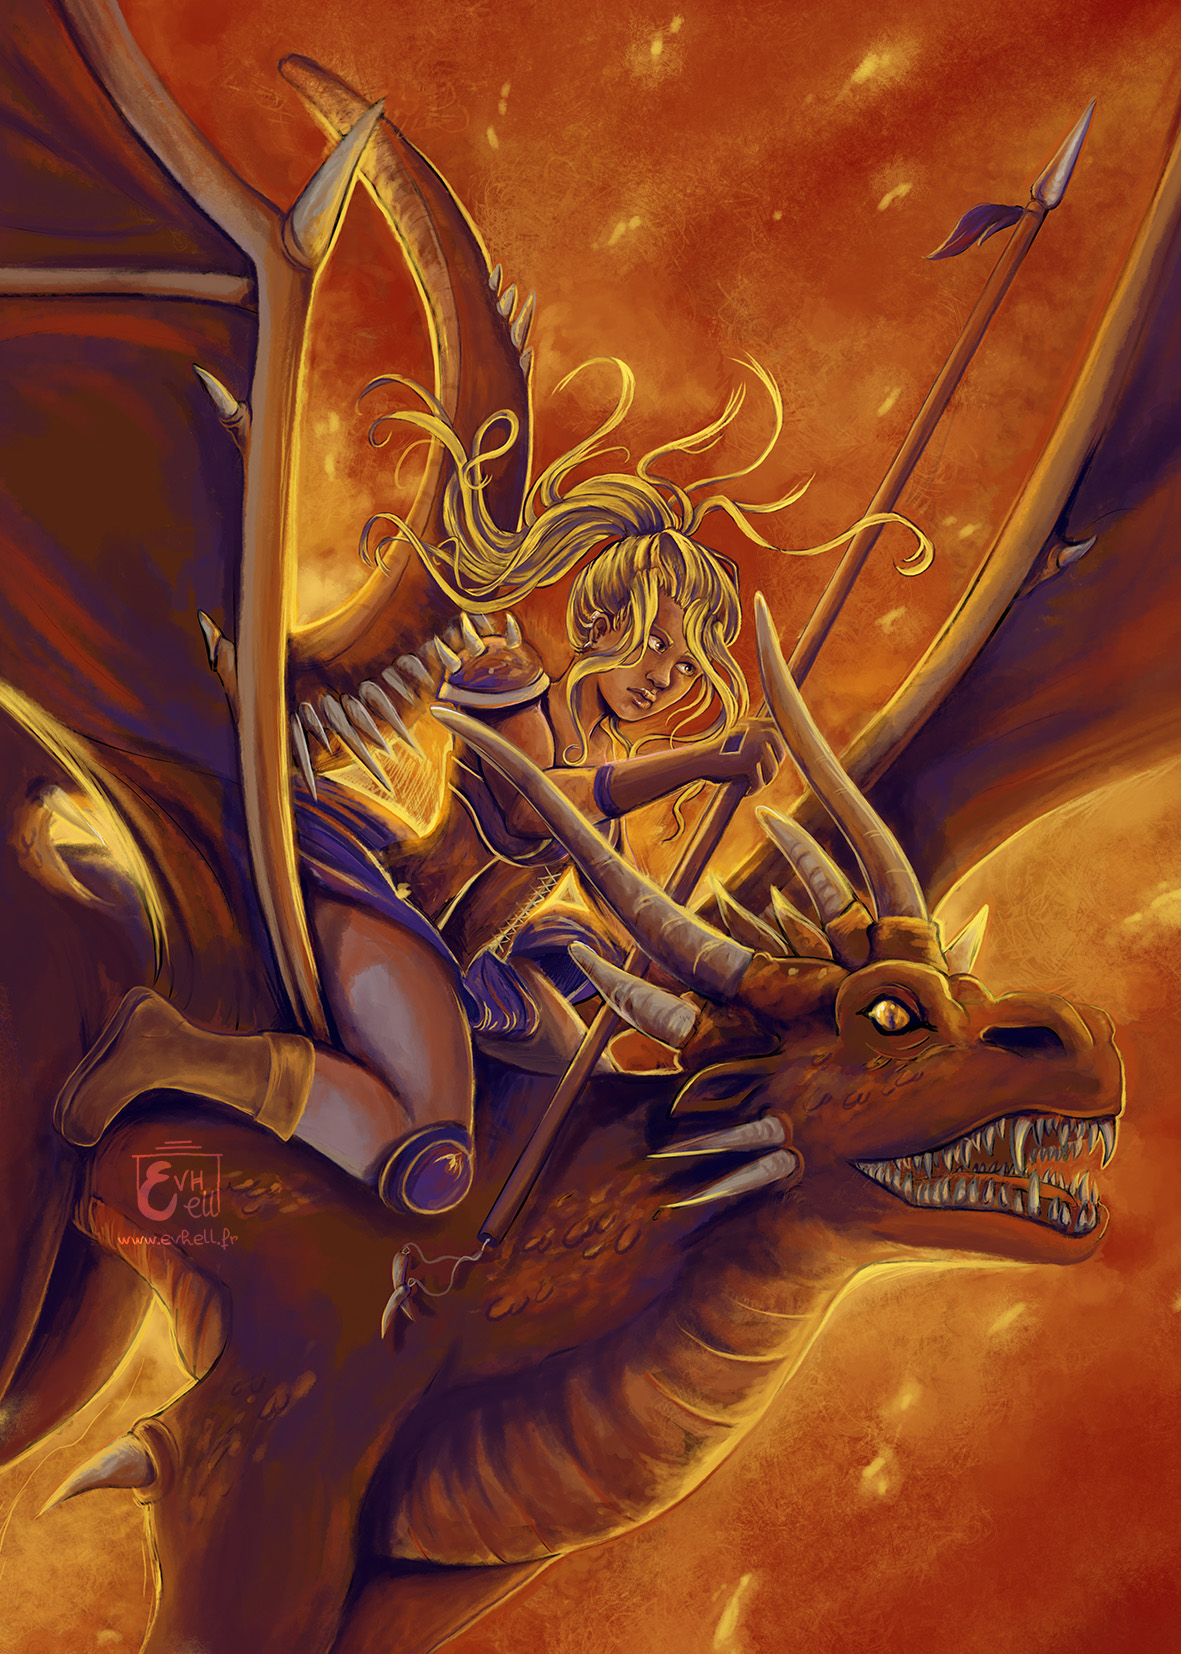 Valkyrie chevauchant un dragon